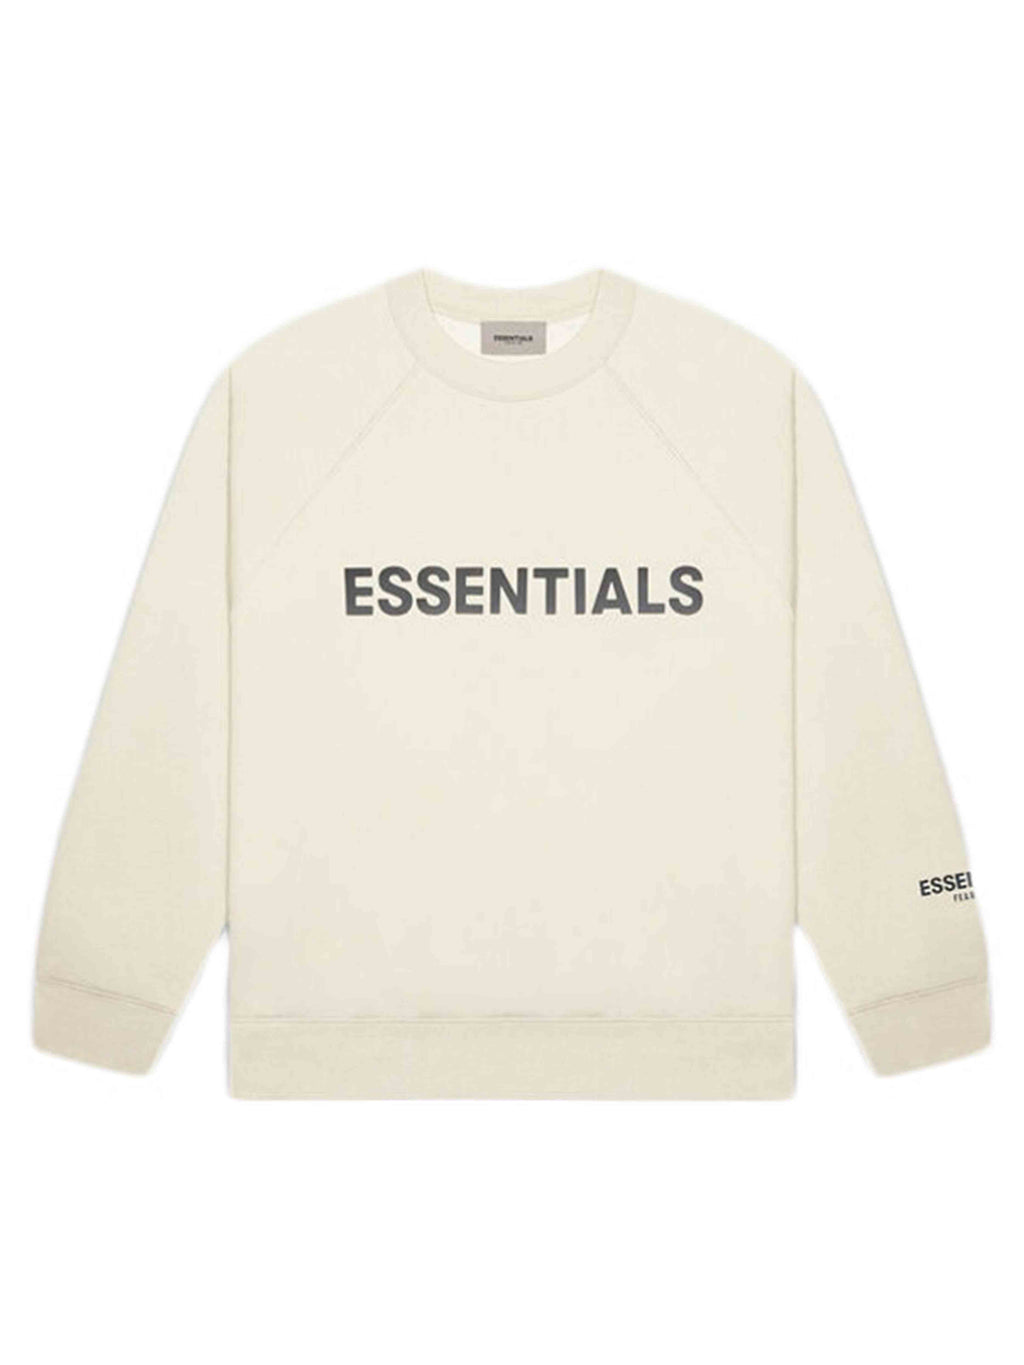 FOG ESSENTIALS 3D Silicon Applique Crewneck Buttercream